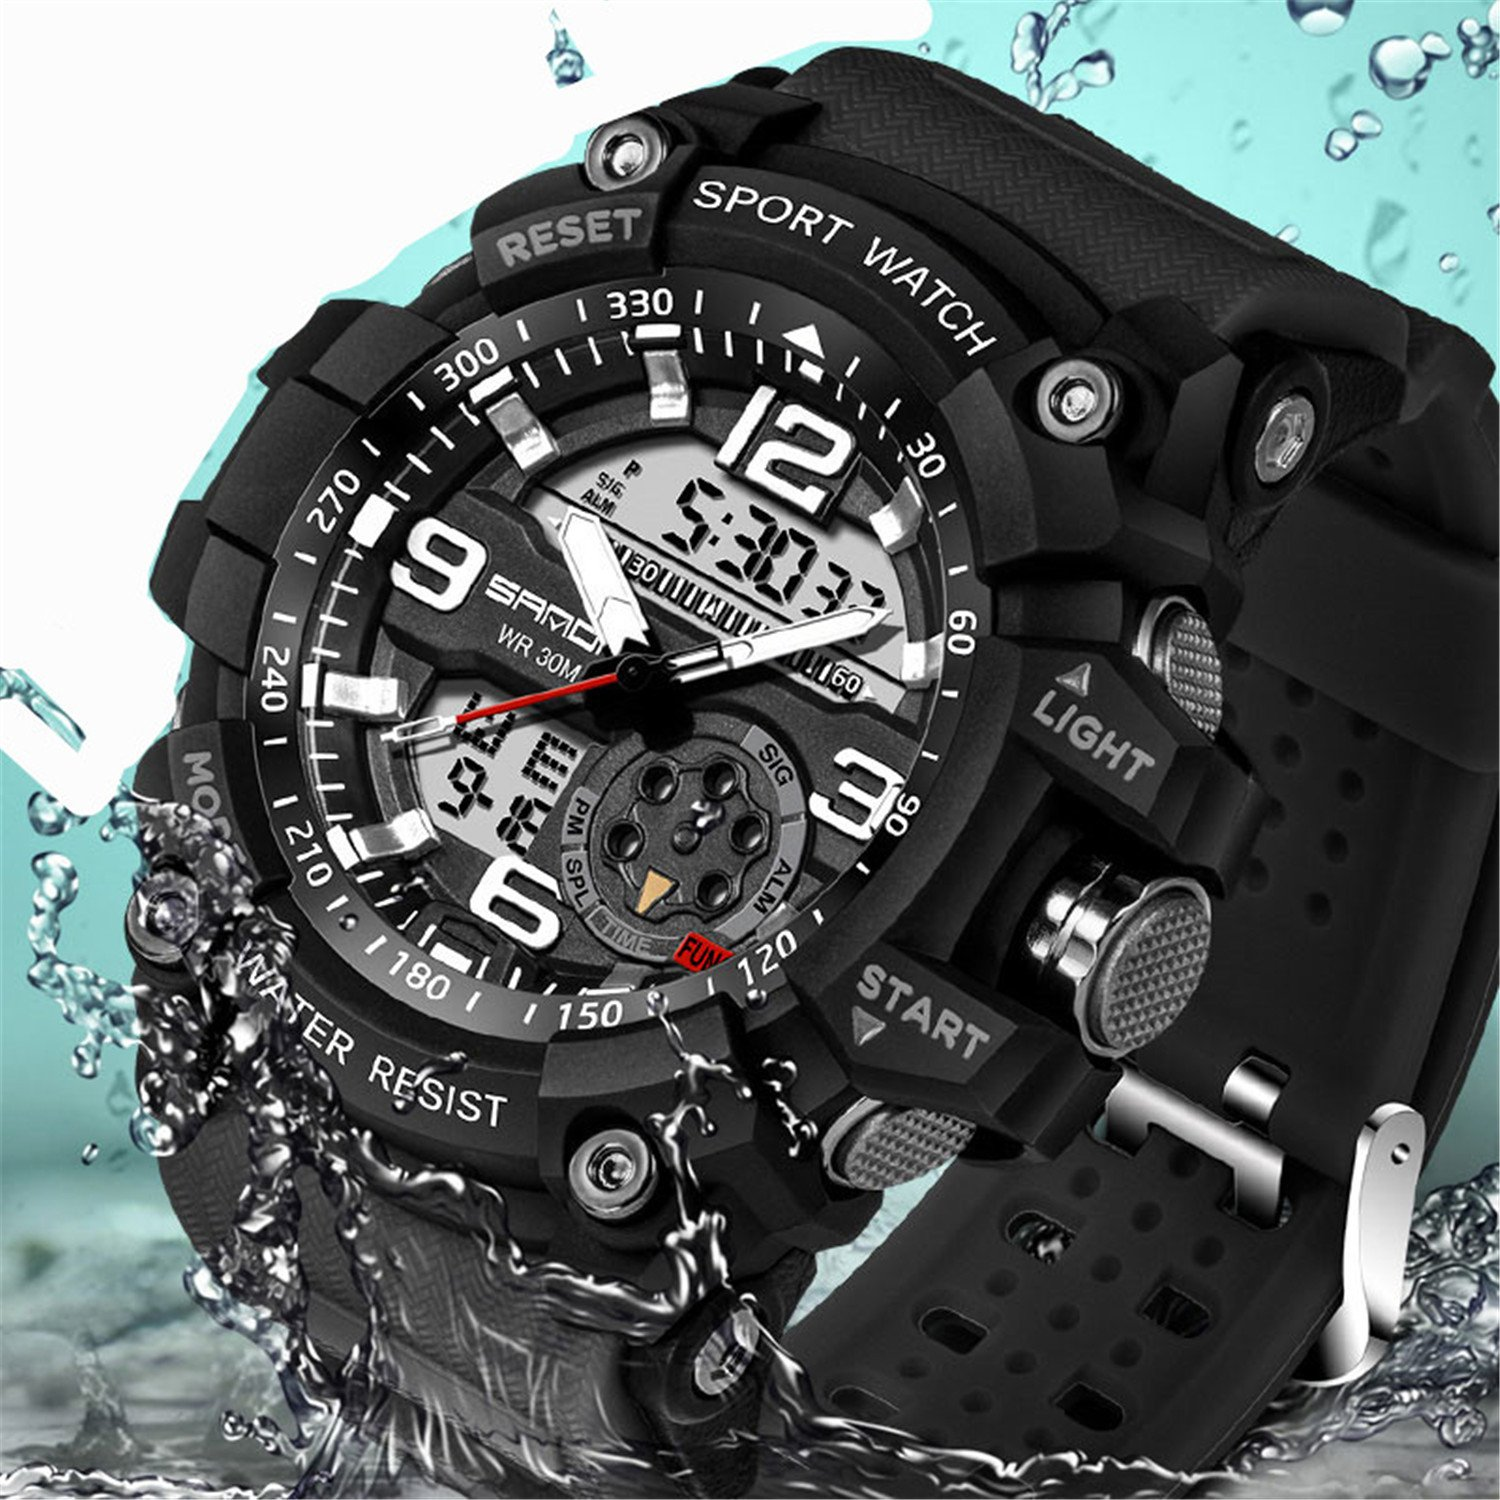 1ad9b5fce08 Get Quotations · Wdnba Mens Watch Quartz Watch Military Watch Analog Digtal Wrist  Watch Men s Sport LED Dive Watches